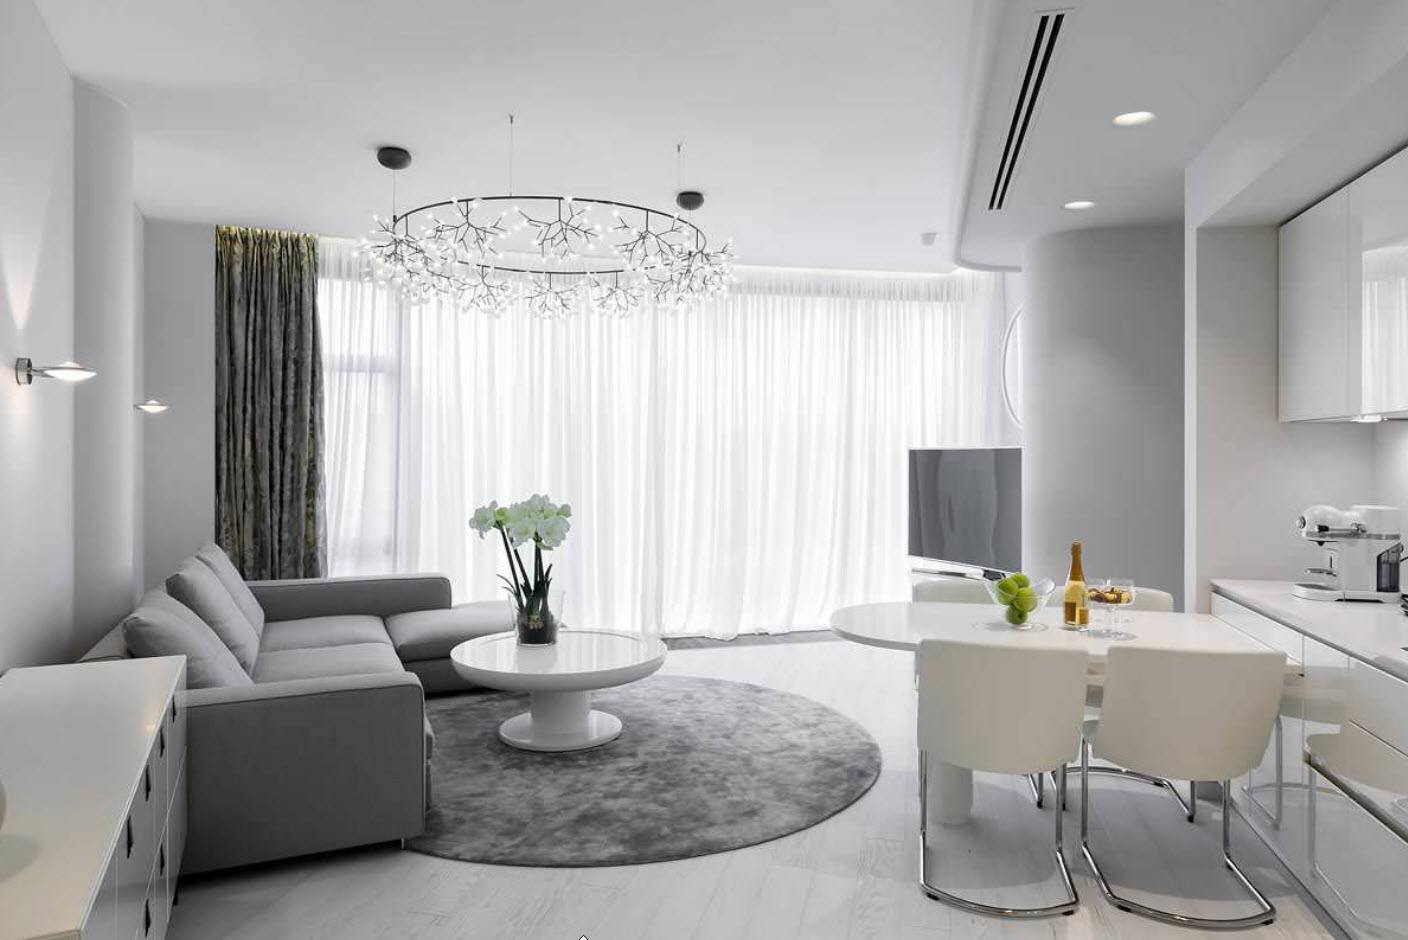 White Living Room: Different Style Interiors with Photos. Boxed open space apartment with the sitting area designated with gray rug